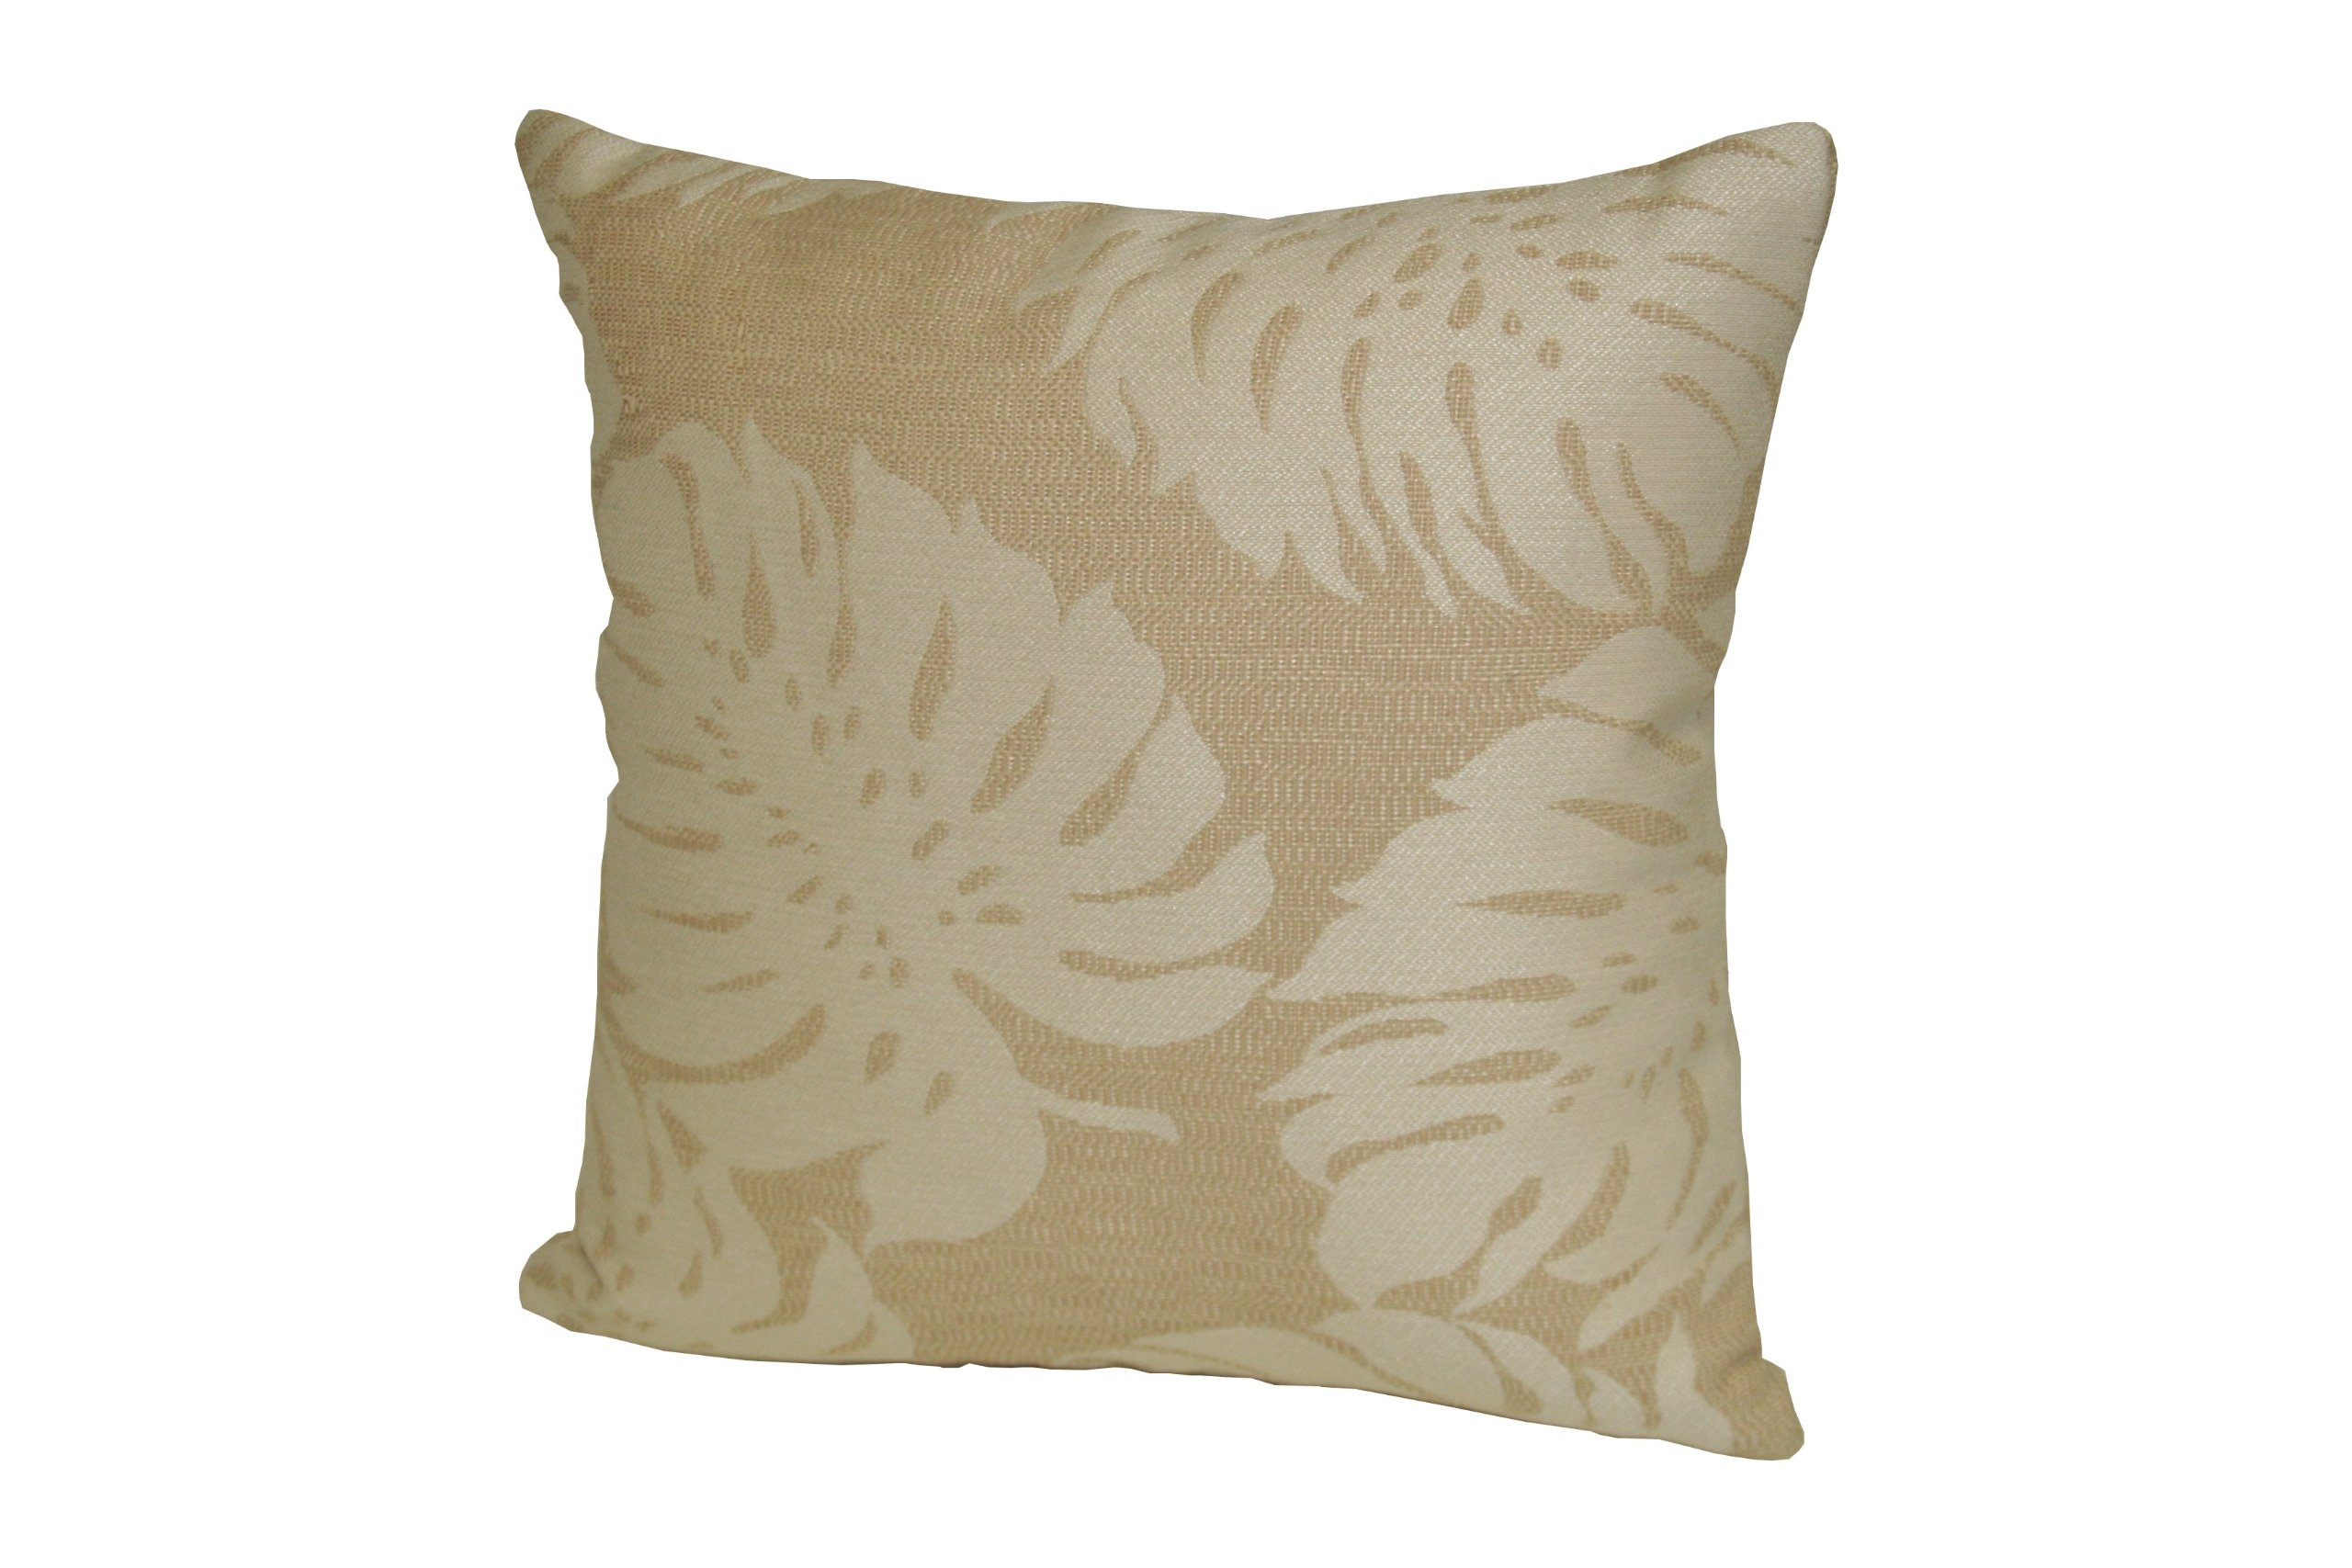 Rennie & Rose Outdoor/Indoor Fabrics Bay Palm Outdoor Stuffed Pillow, 24-Inch, Sand - Polypropylene/polyester Mildew/Fade Resistant w/resilient, washable, removable poly insert Manufactured in USA Machine Washable, Poly Fill, Hidden Zip Closure - patio, outdoor-throw-pillows, outdoor-decor - 81NuiLT1EML -